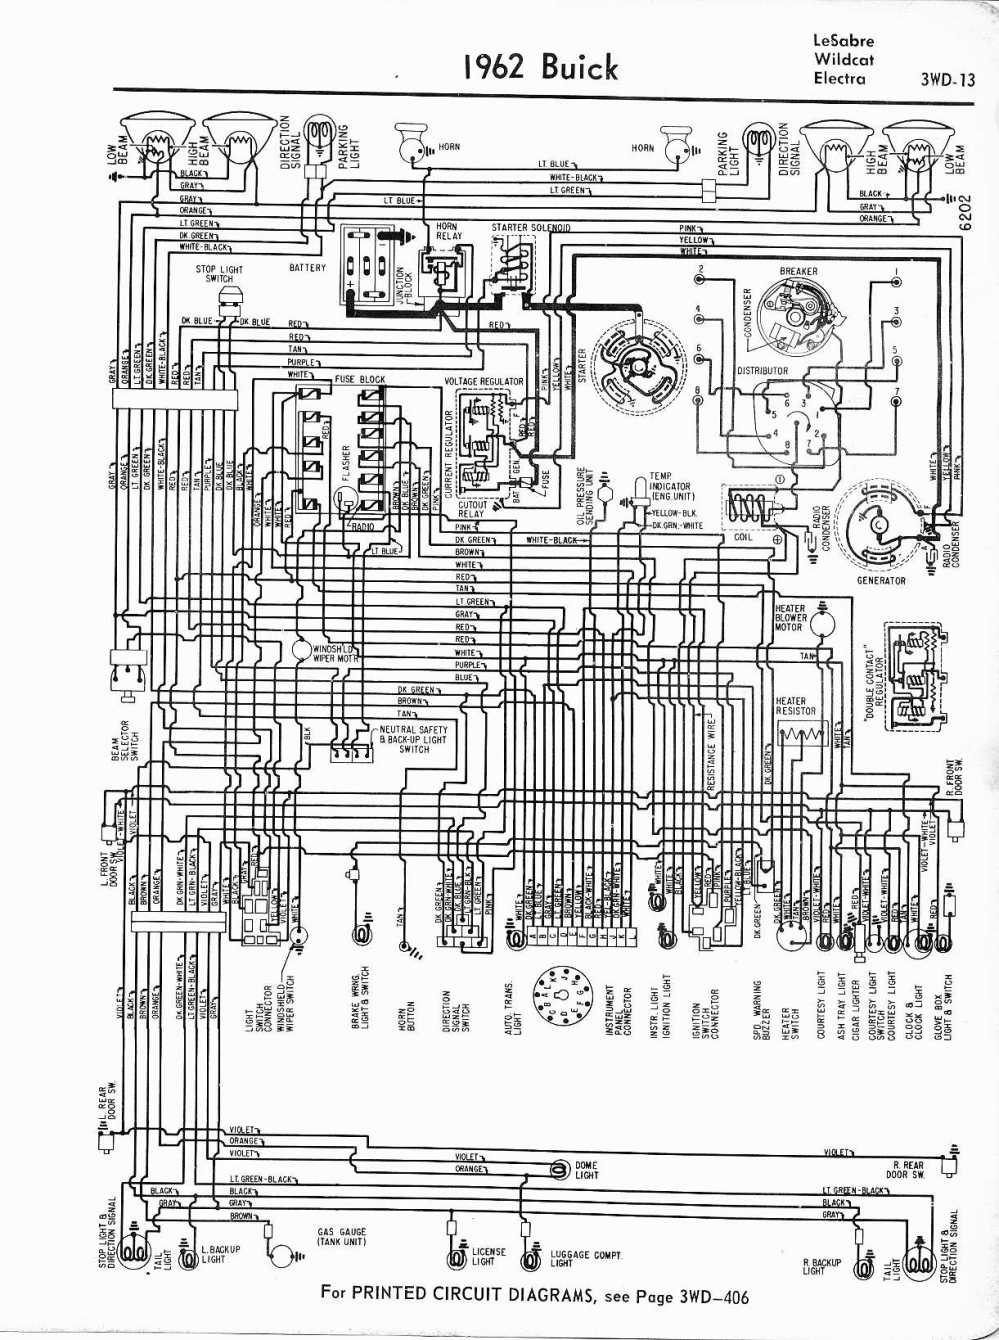 medium resolution of buick wiring diagrams 1957 1965 1966 chevy chevelle wiring diagram 1966 buick riviera wiring diagram